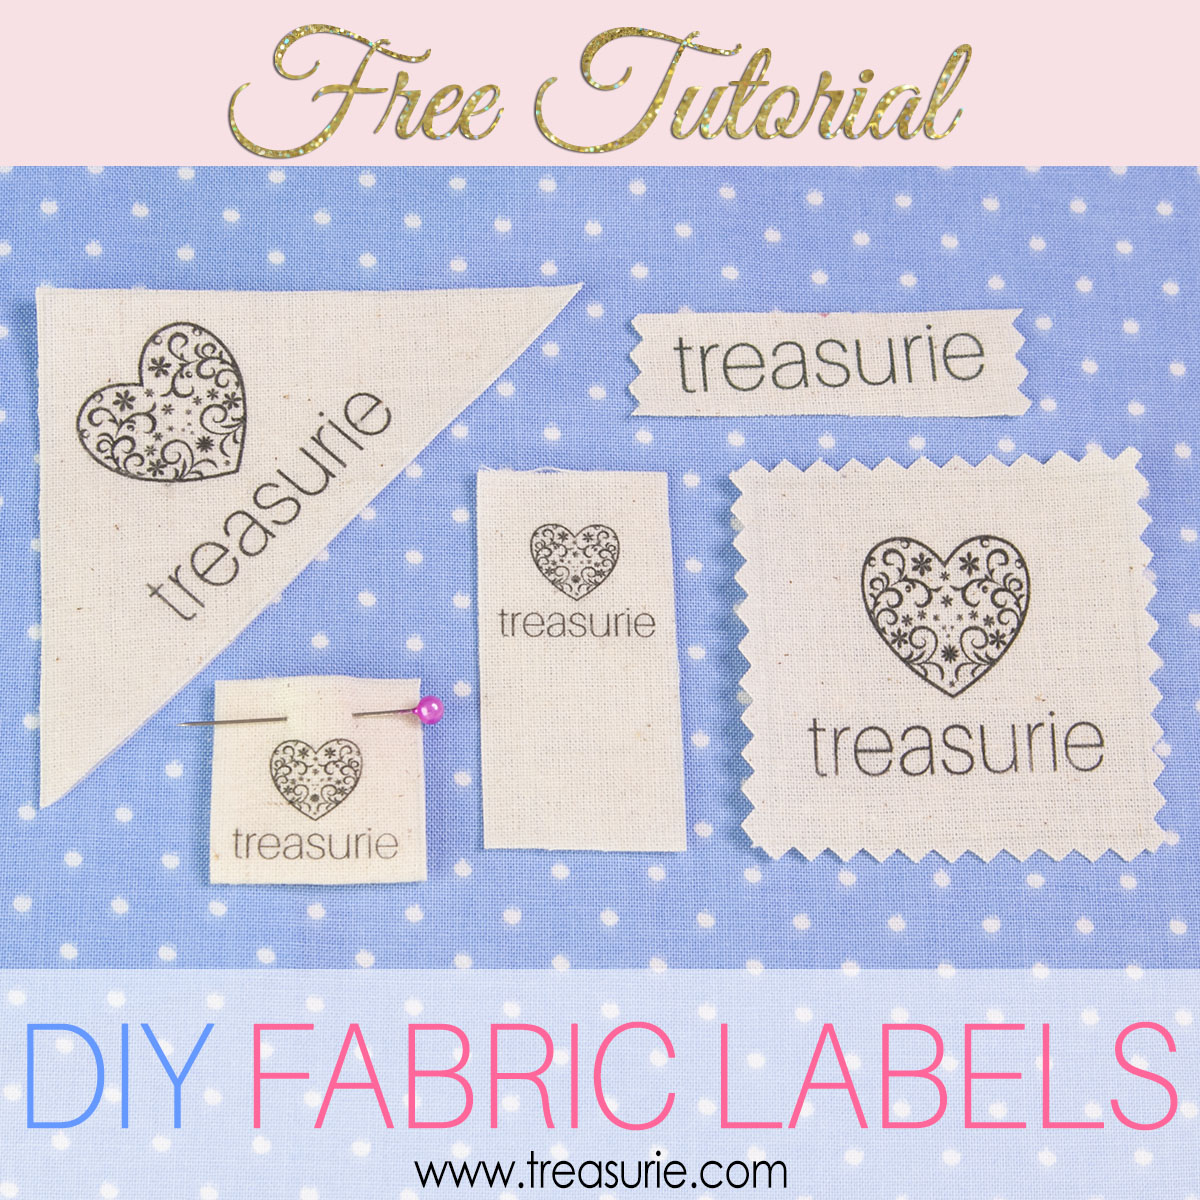 Make your own clothing labels diy fabric labels cheaply for Create fabric labels